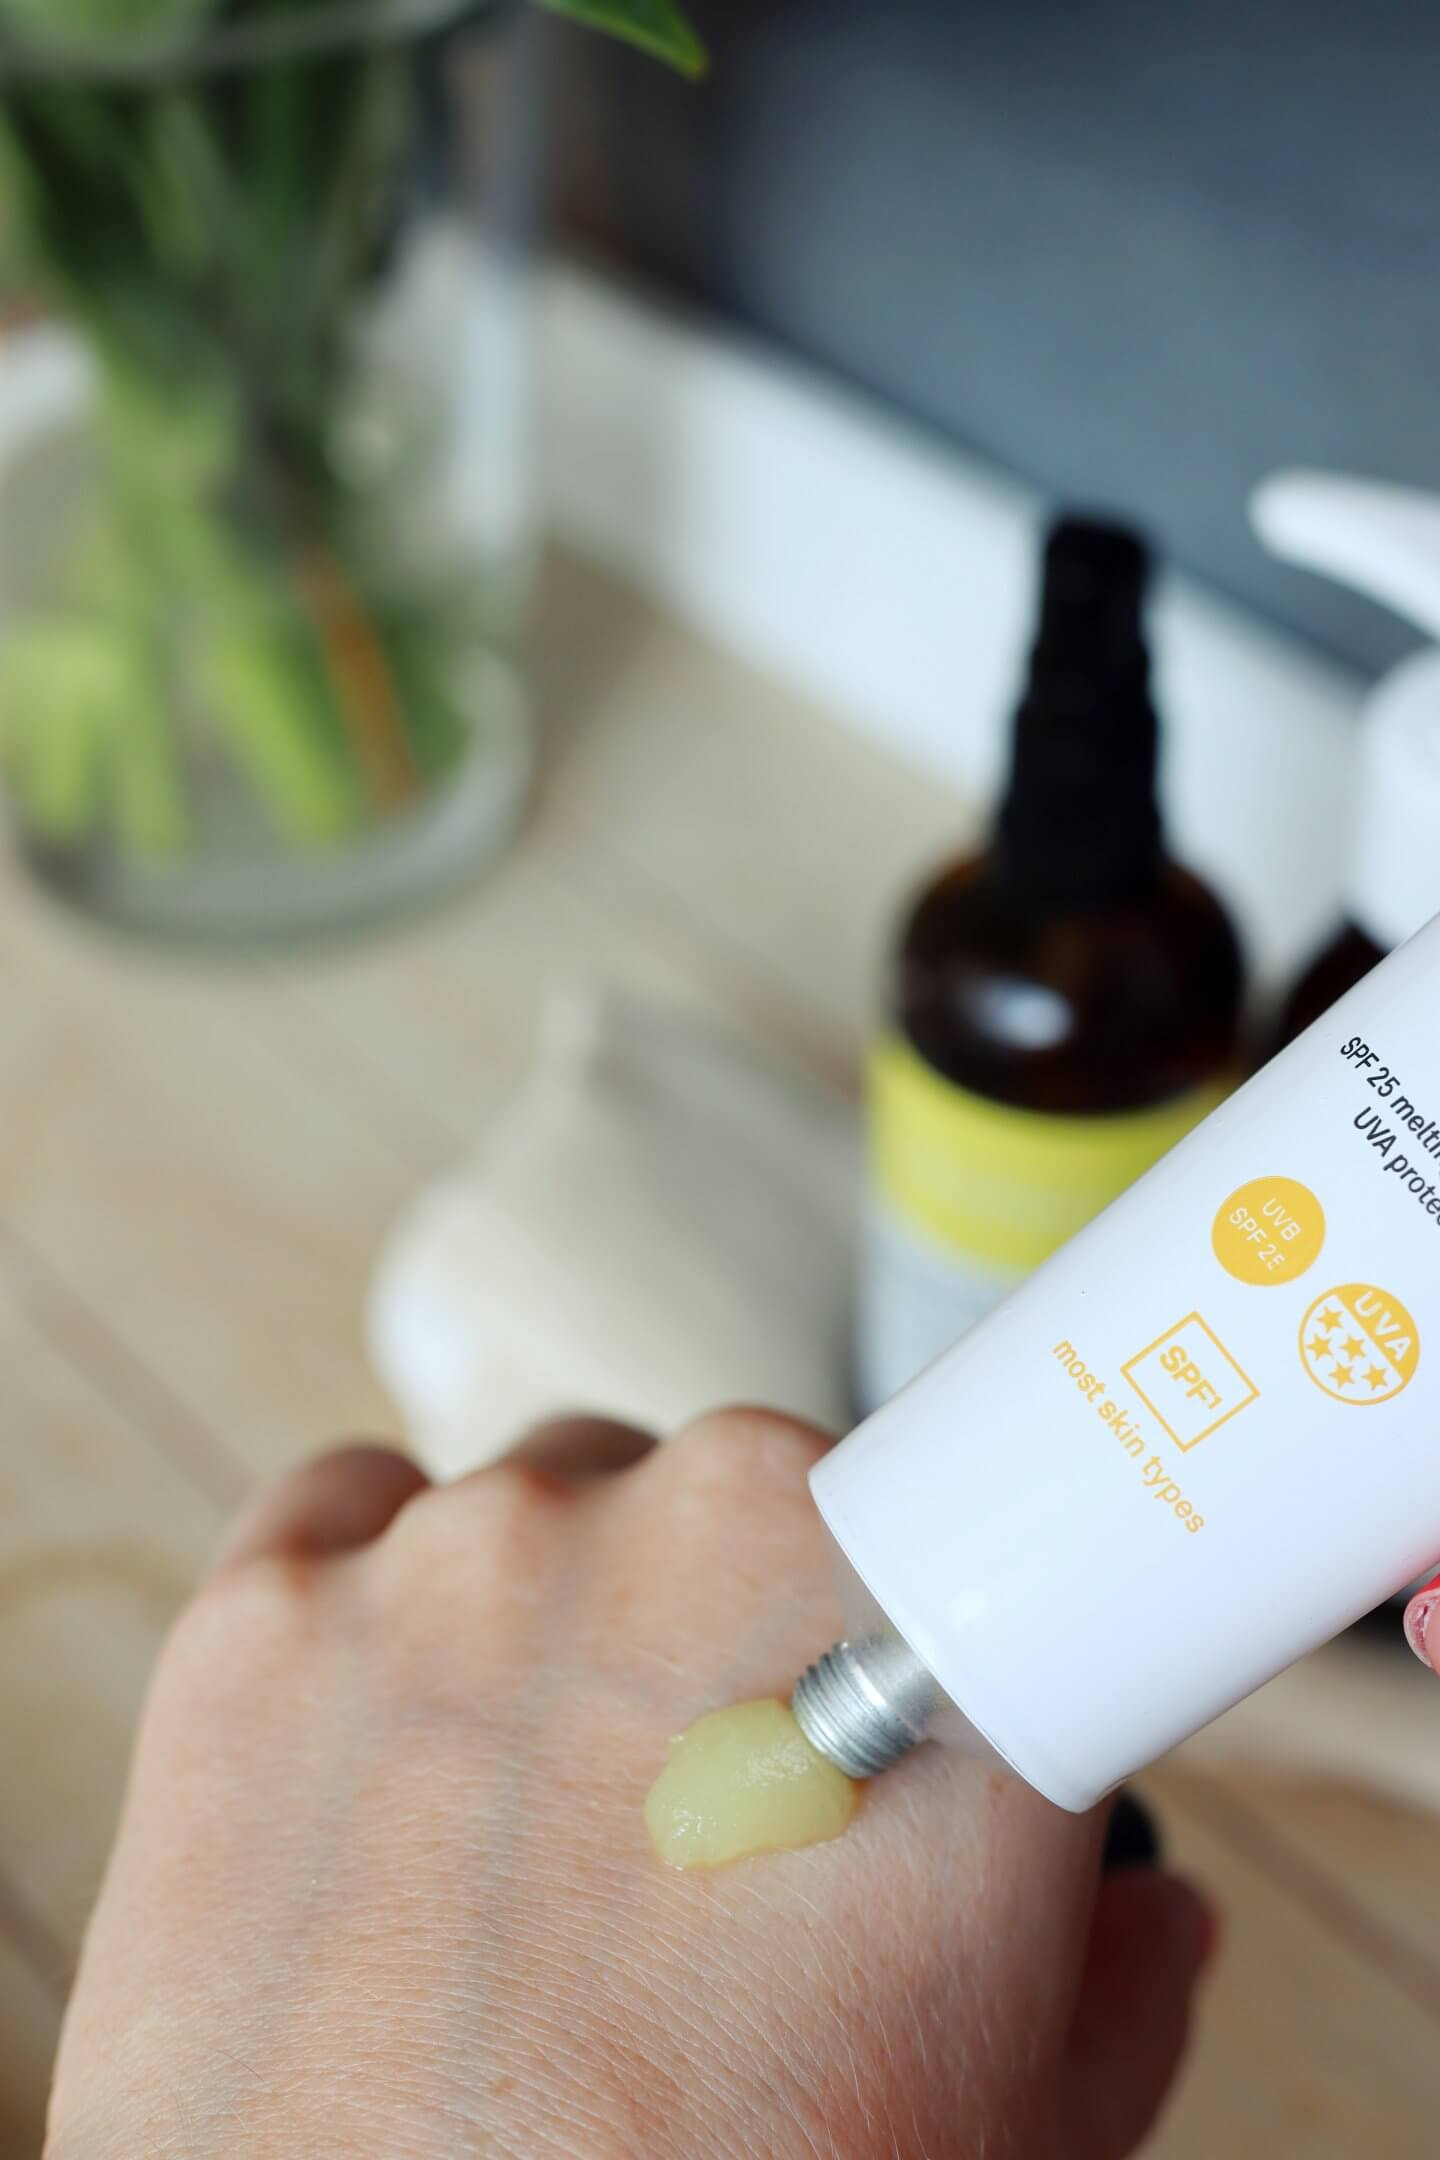 face theory skin care products including spf face cream, vitamin c cleanser and oily cleanser